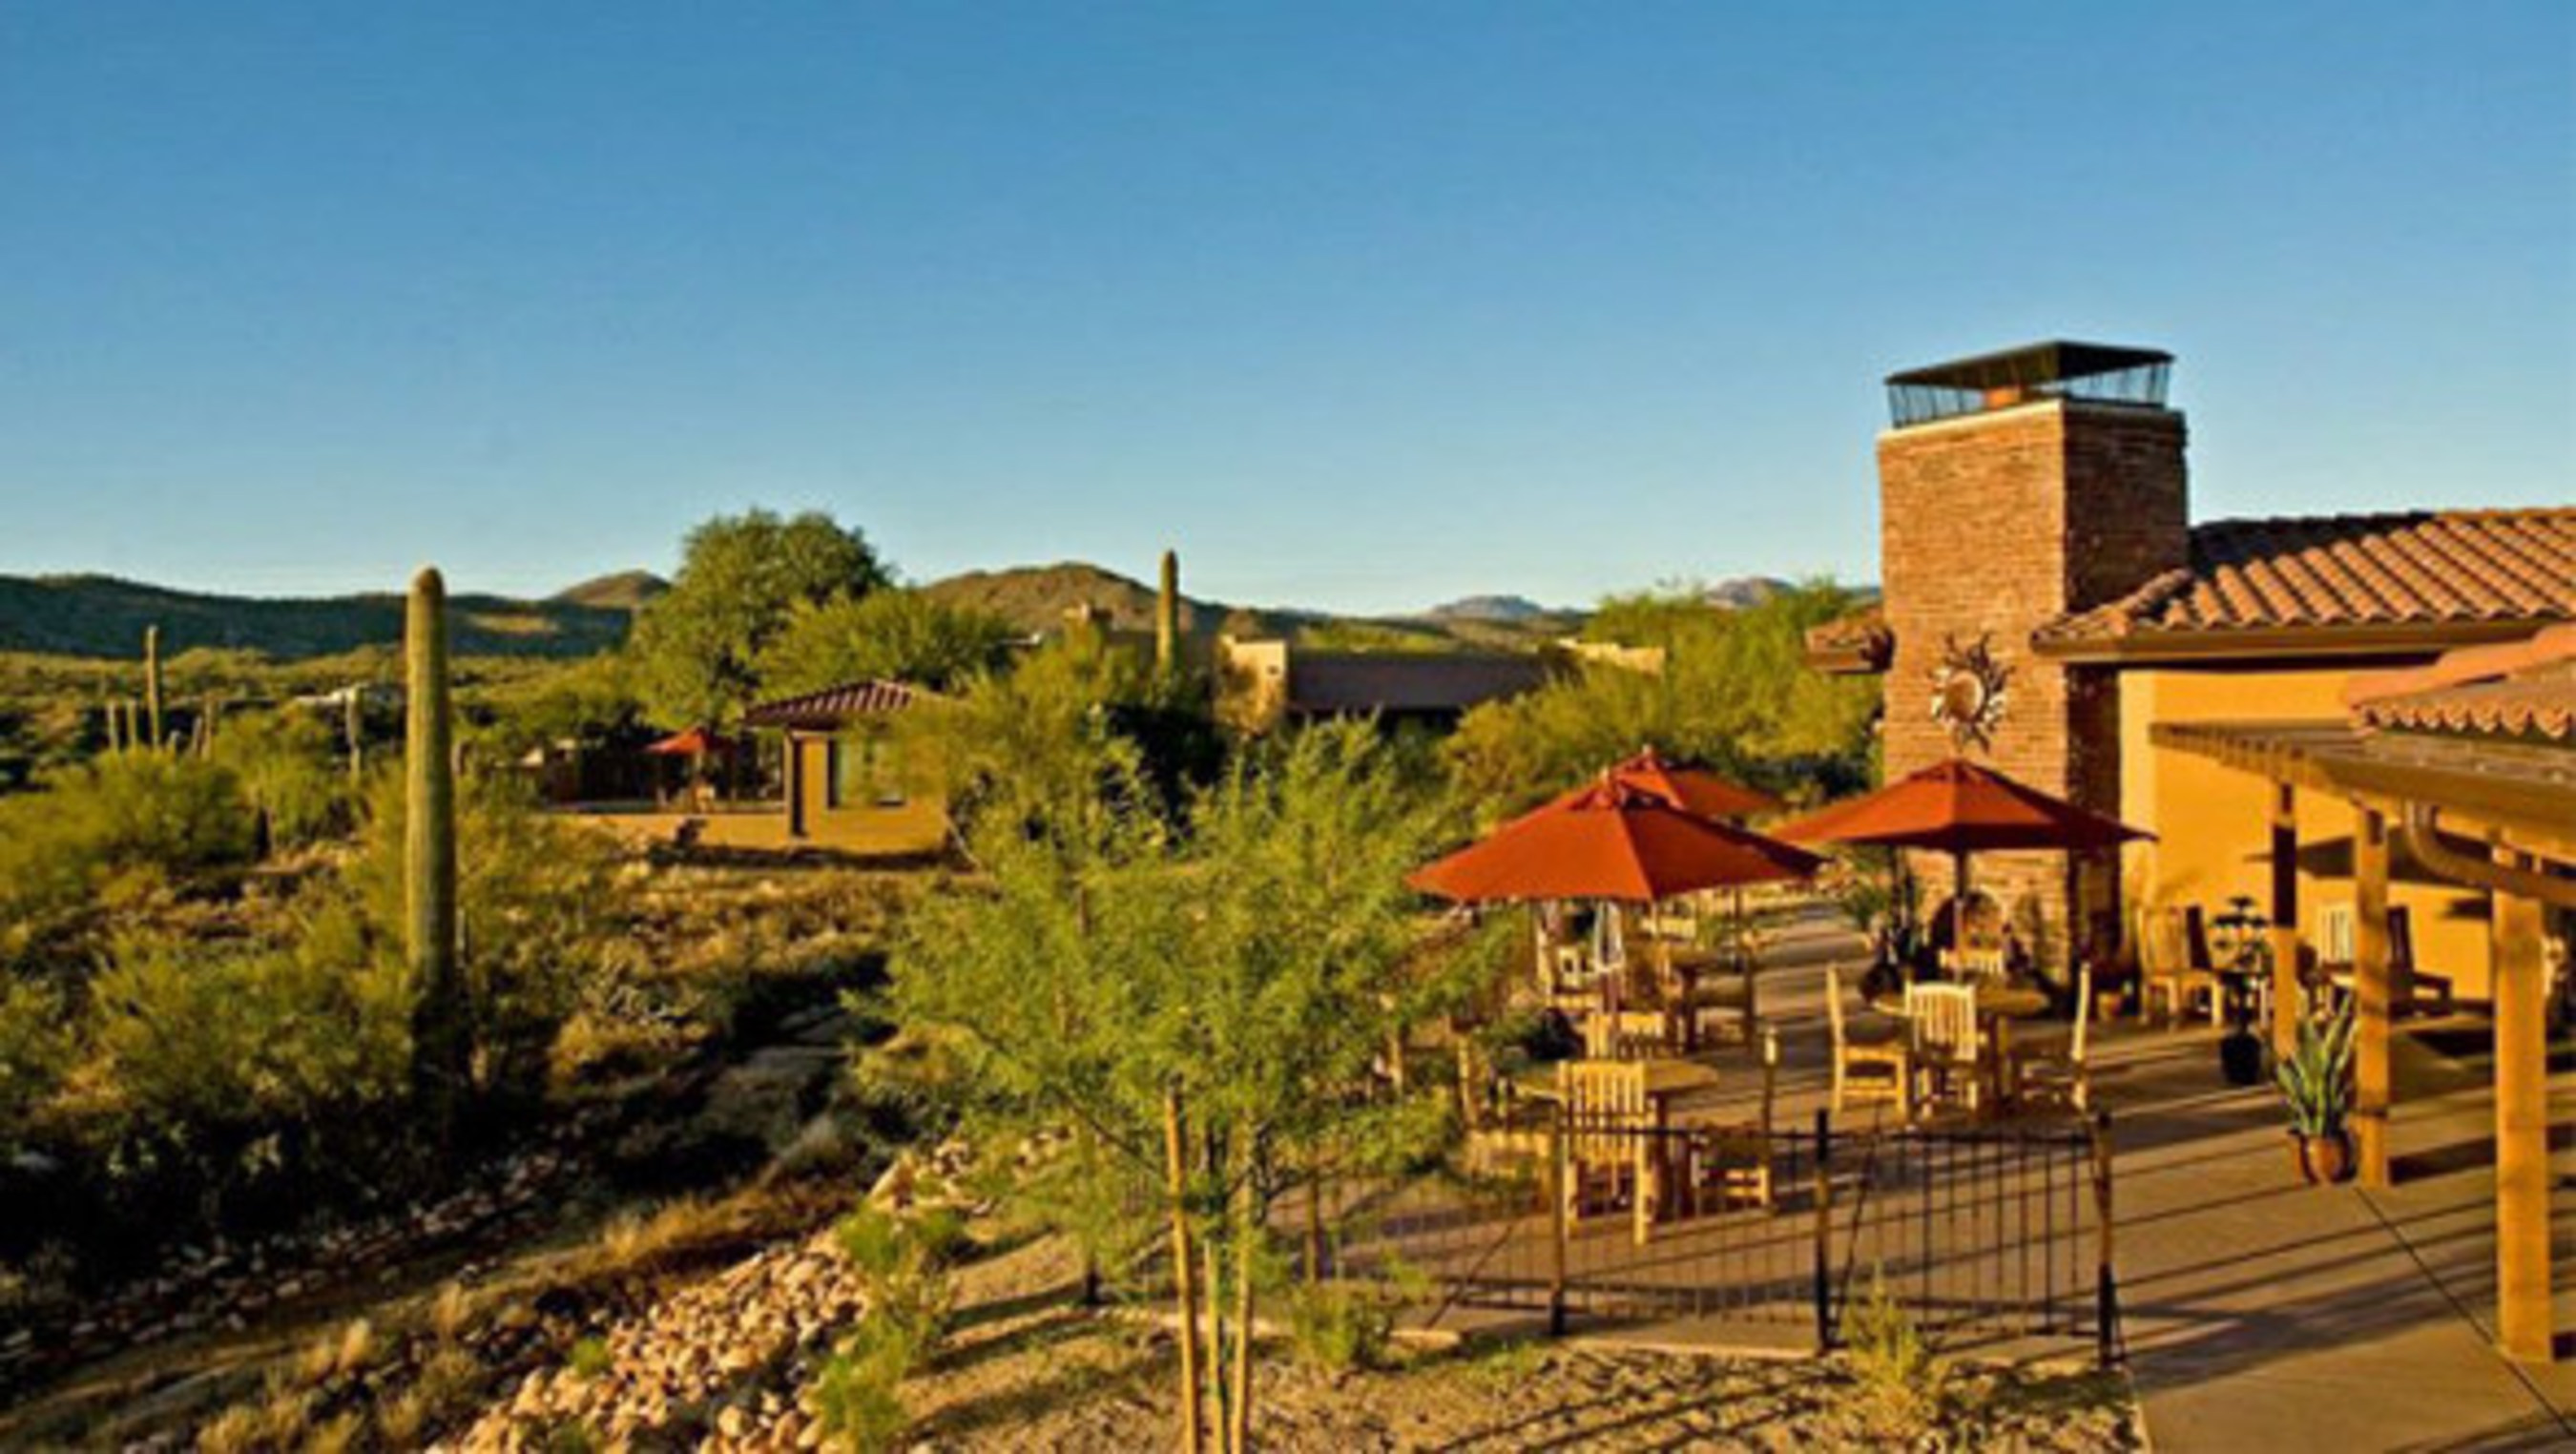 Rosewood Centers for Eating Disorders in Wickenburg, Ariz.